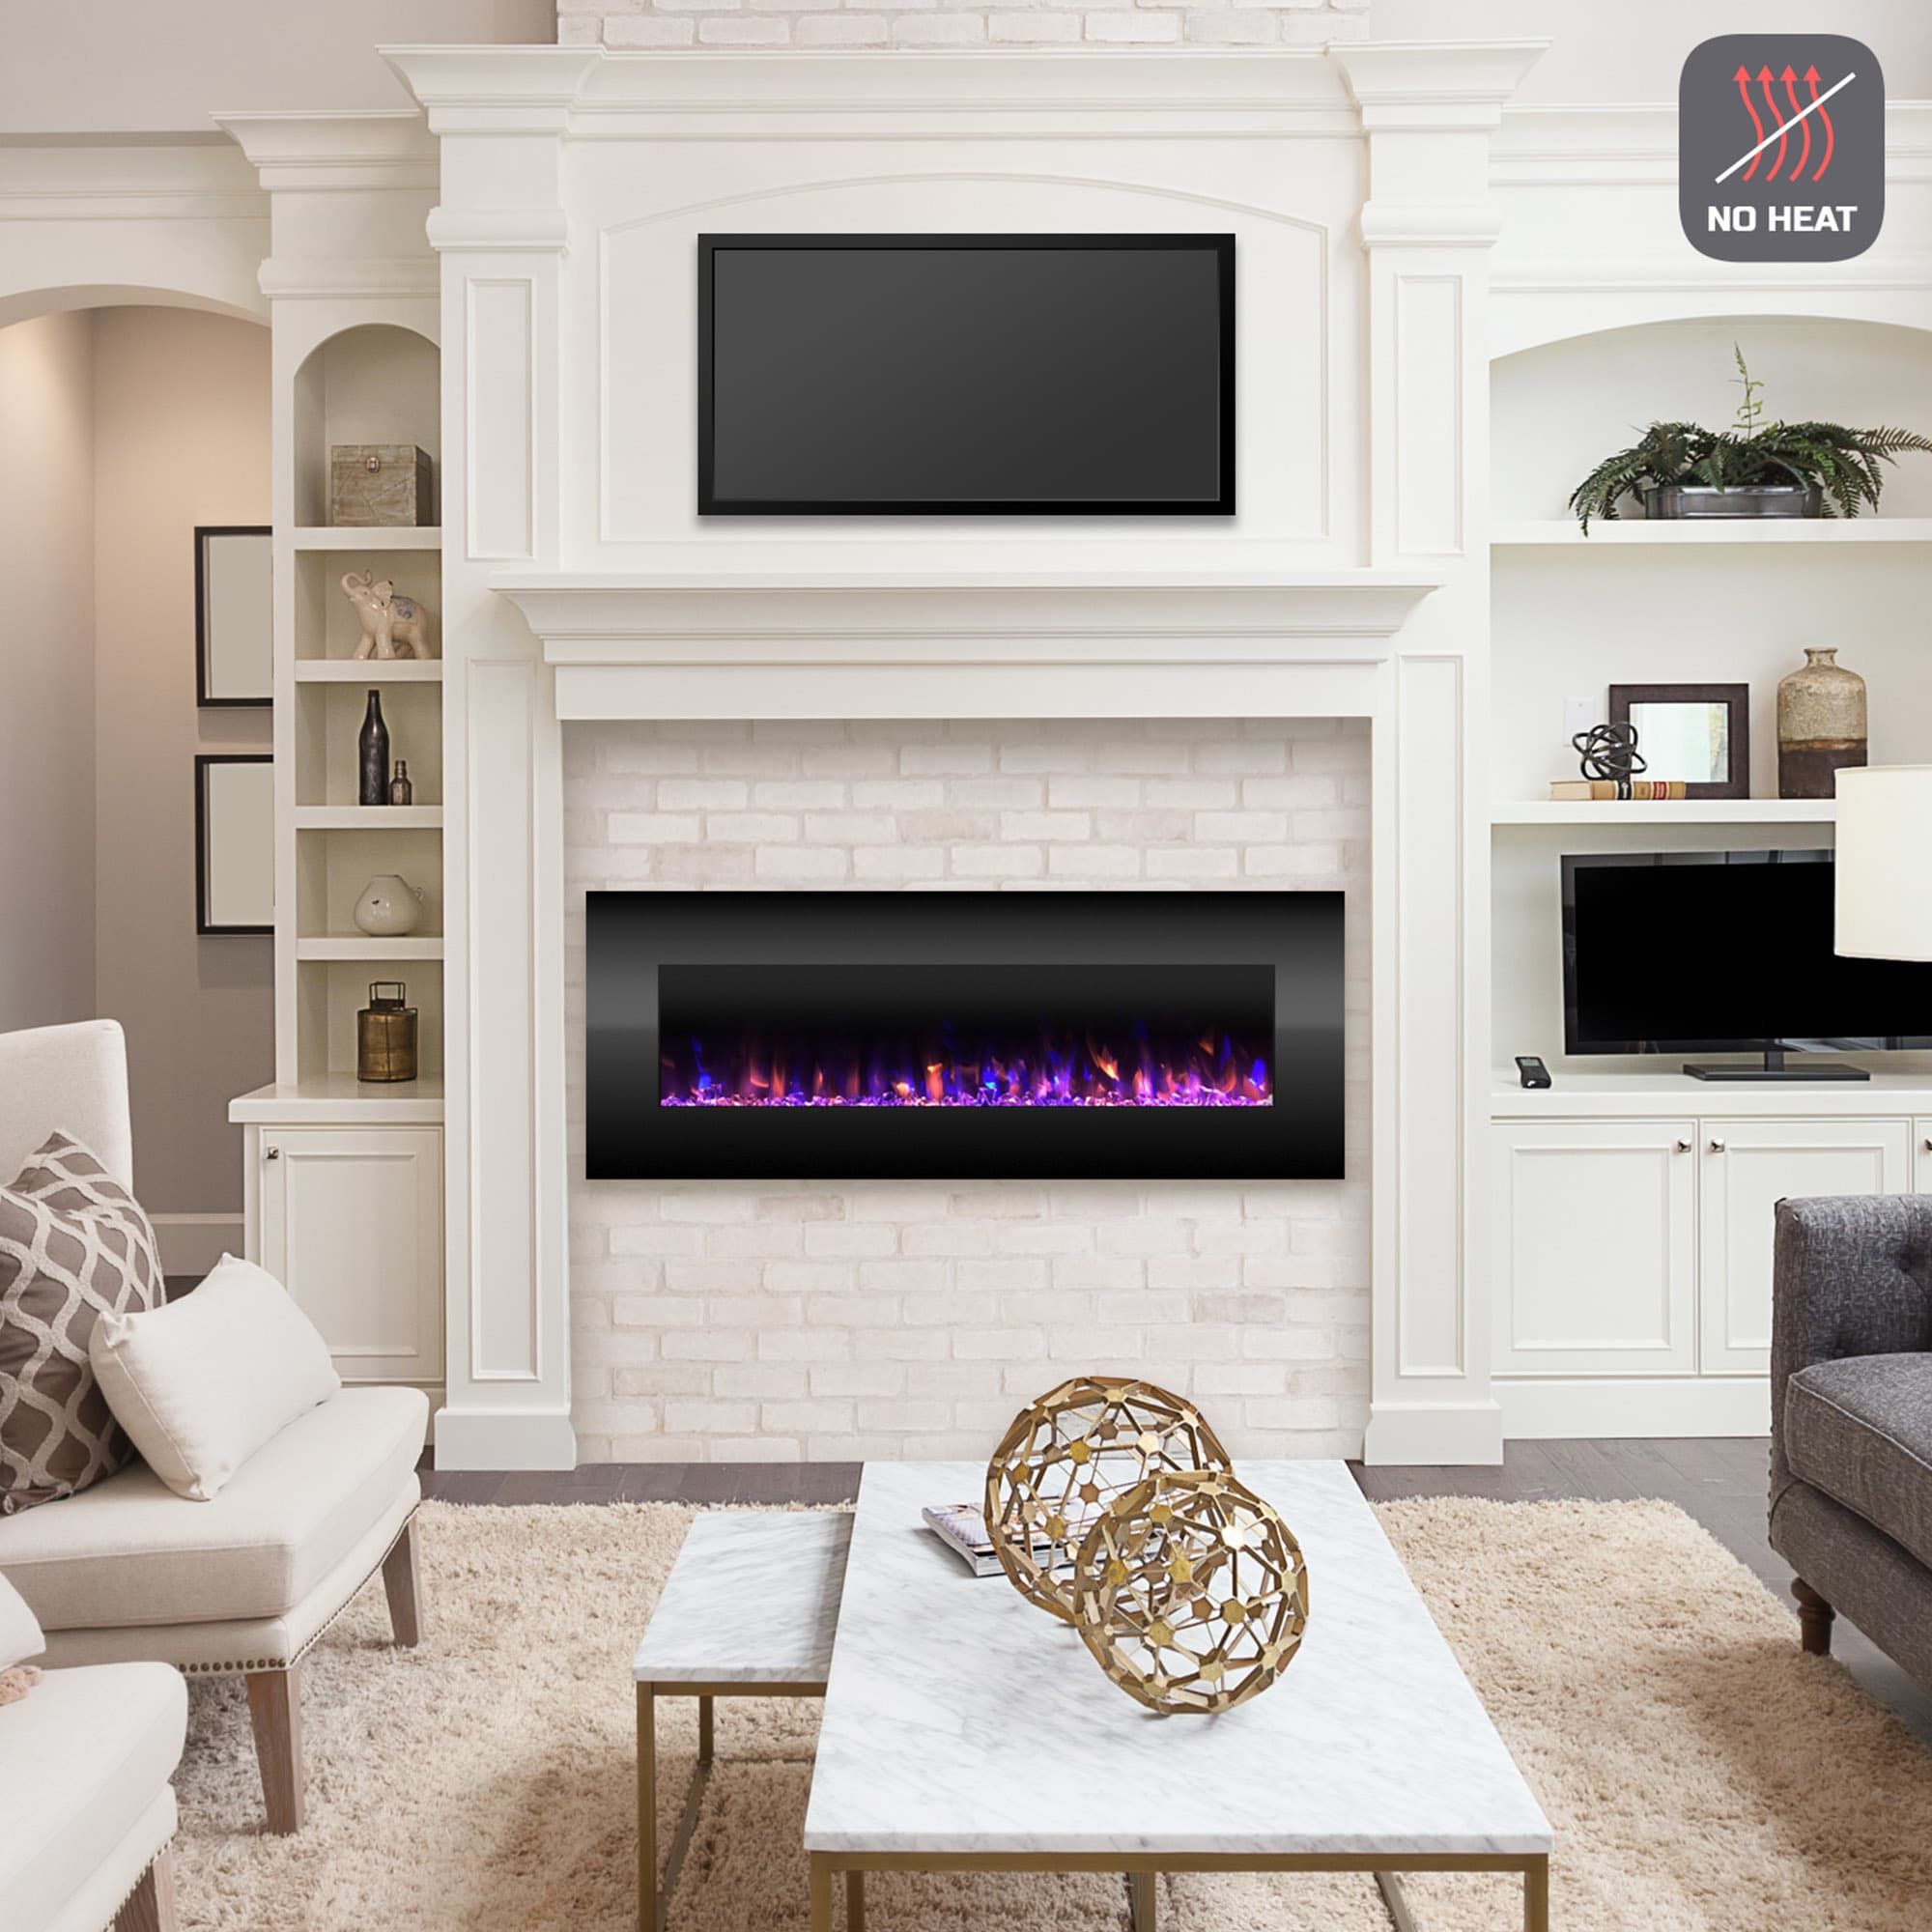 Electric Fireplace Wall Mounted Color Changing Led Fire And Ice Flames No Heat Remote Control 54 Inch By Northwest